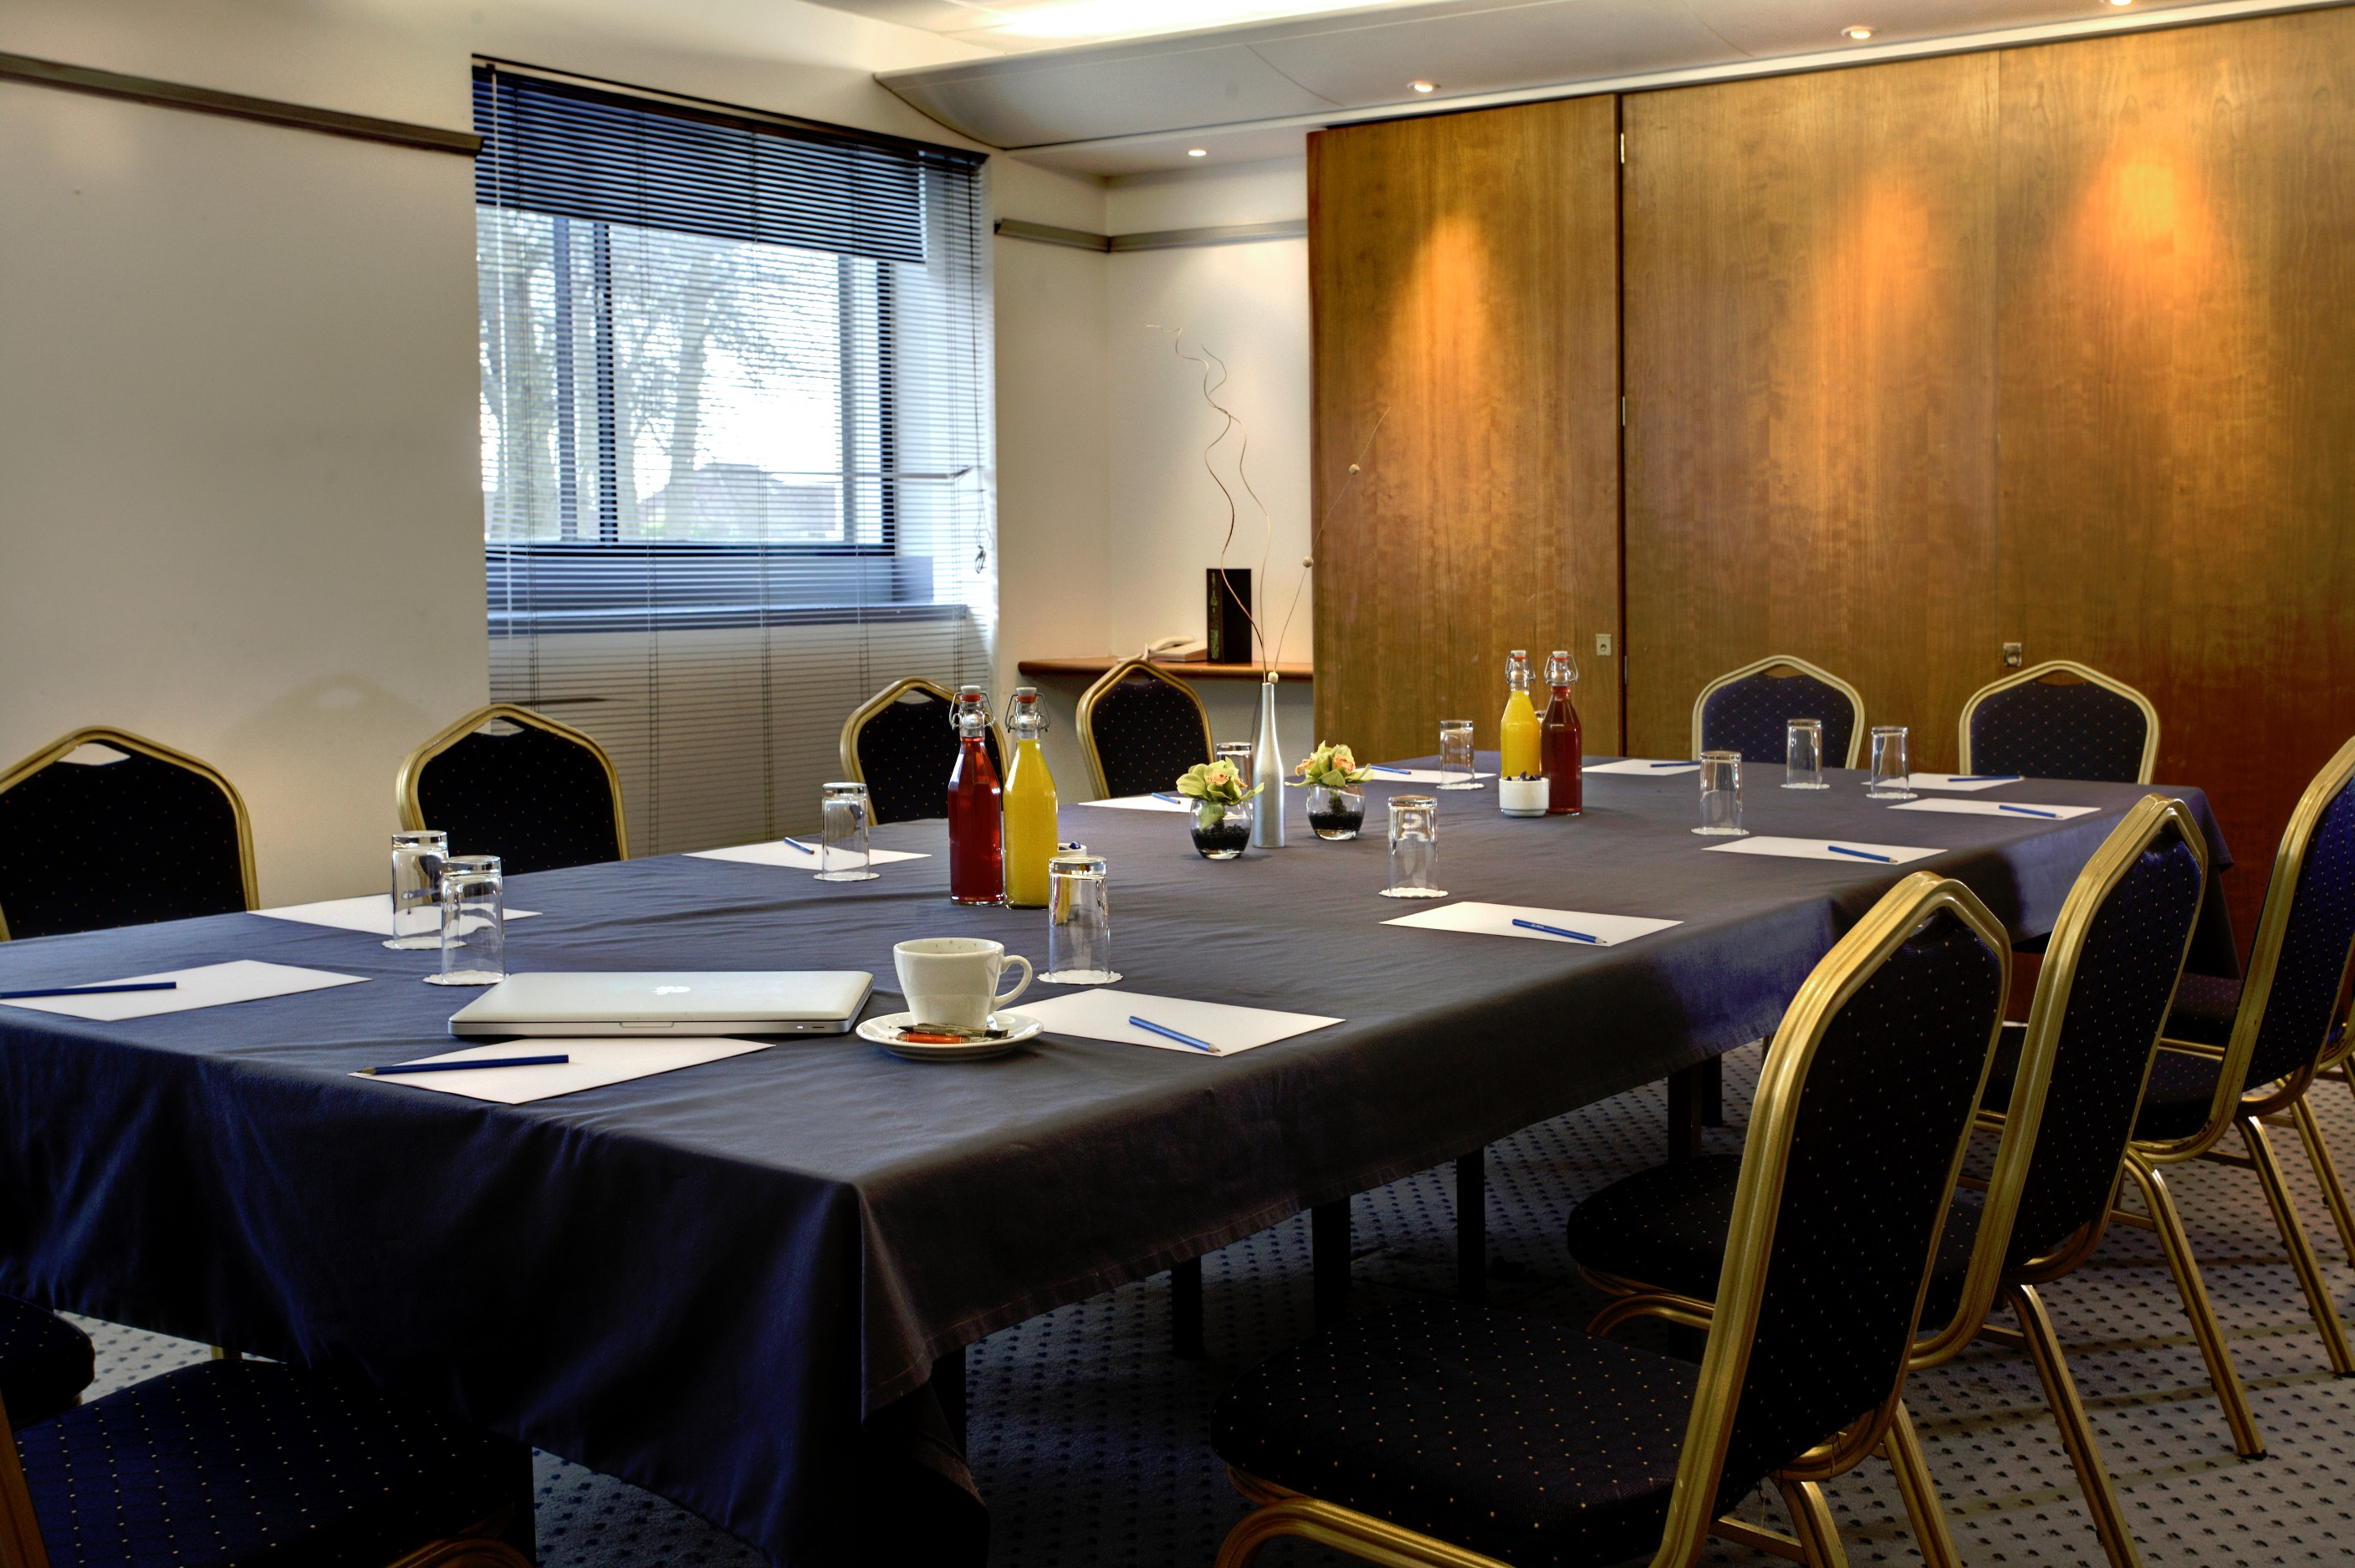 ipswich hotel meeting space 01 84217